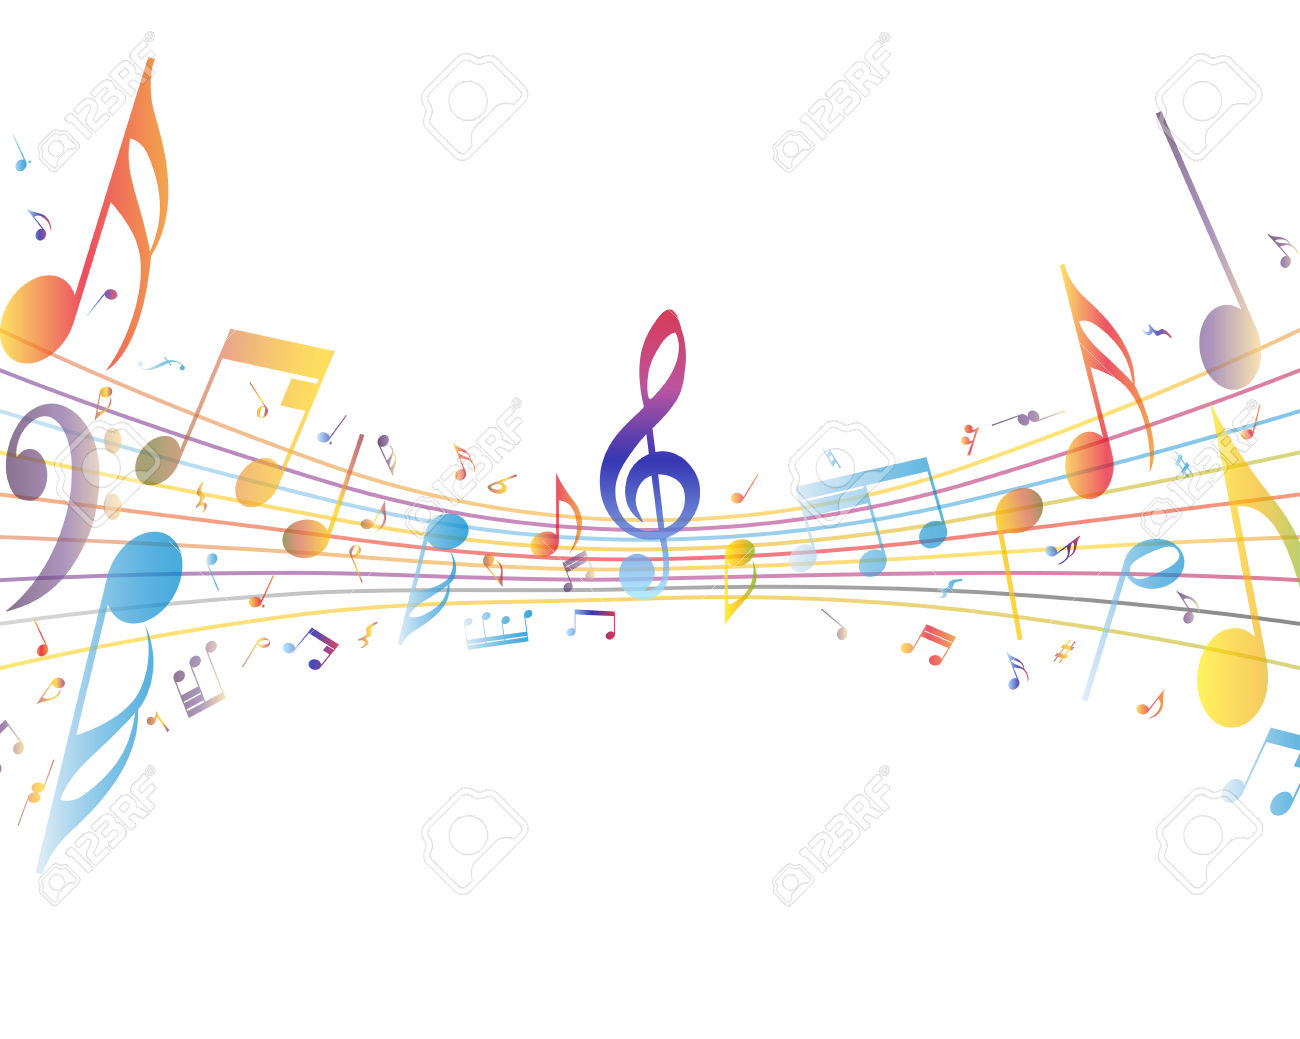 Music Note Transparent Free Download Best Music Note Transparent